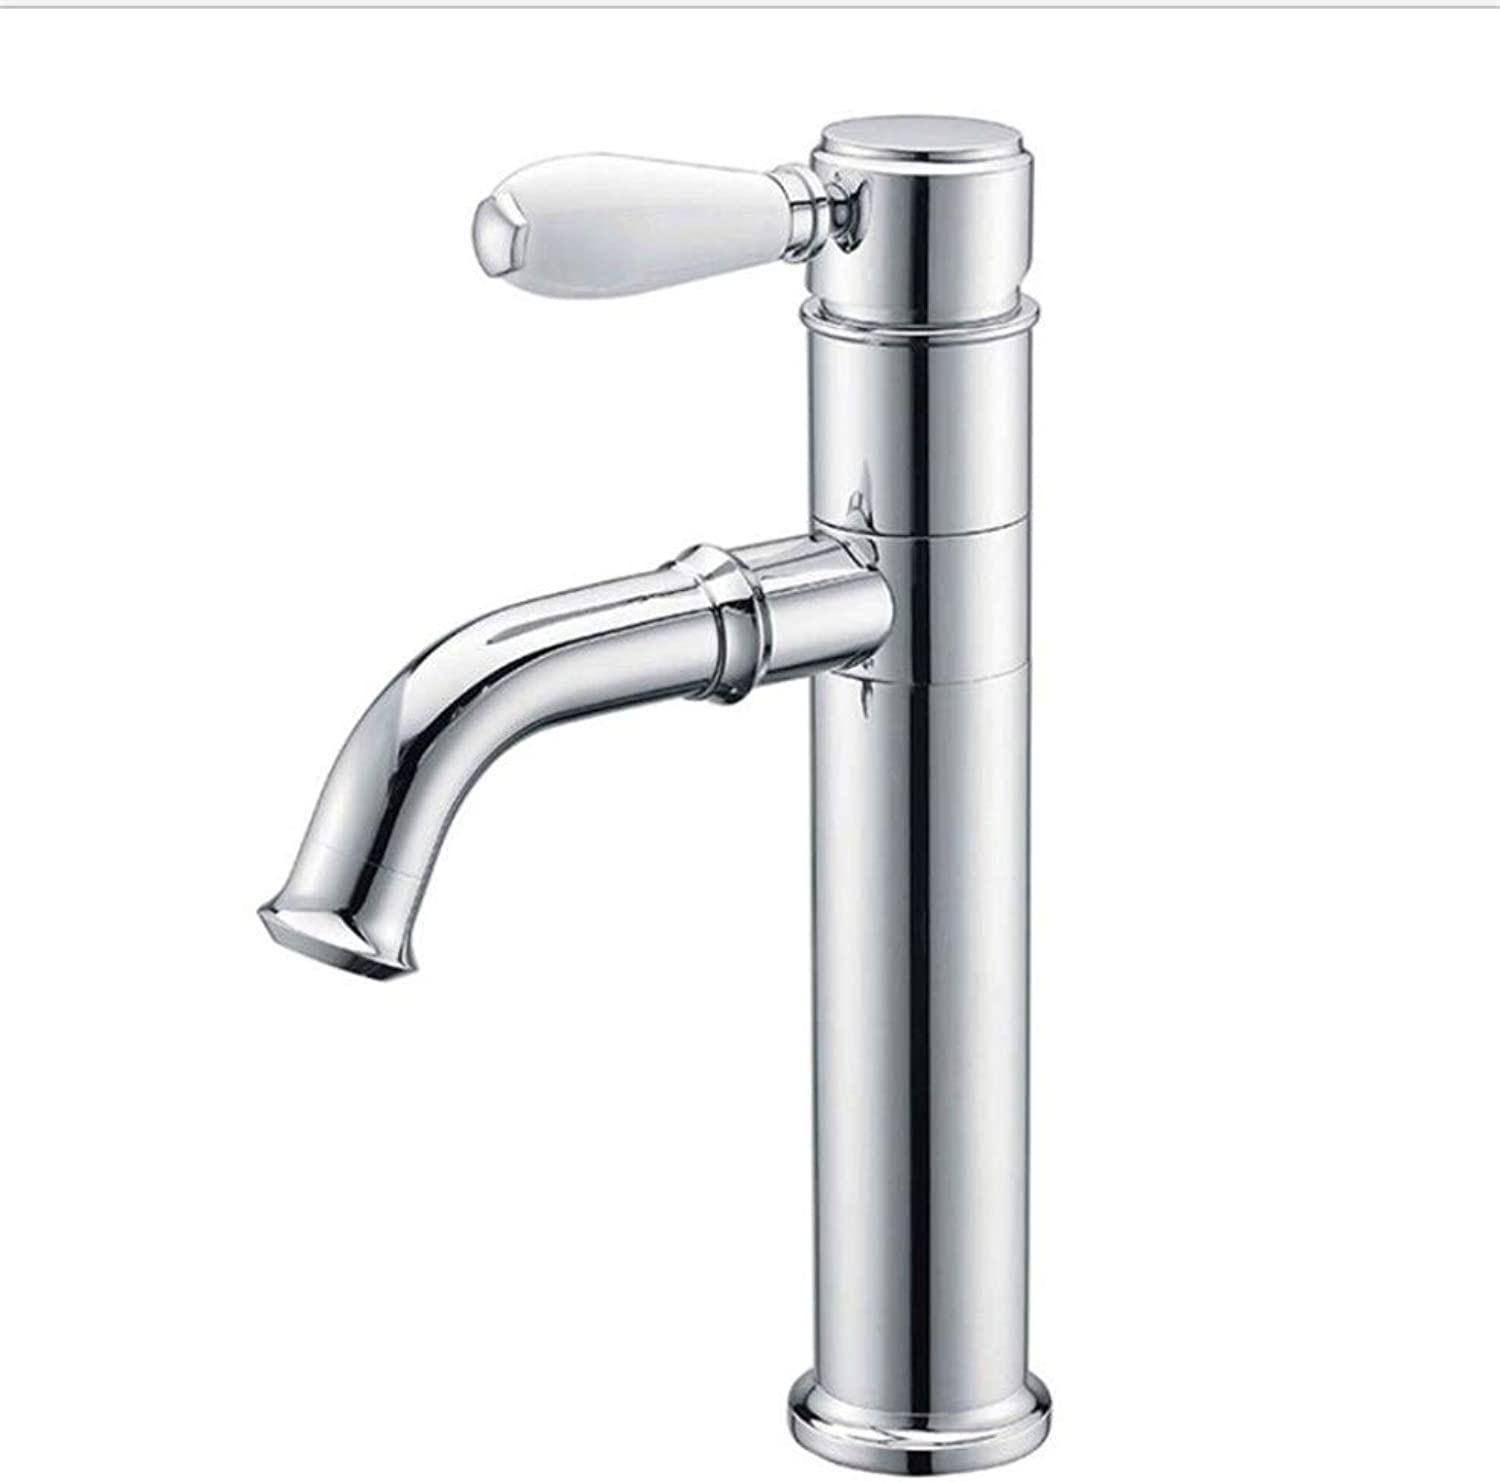 Bathroom Sink Basin Lever Mixer Tap Copper Cold and Hot Basin Faucet Single Hole Washbasin Mixing Faucet